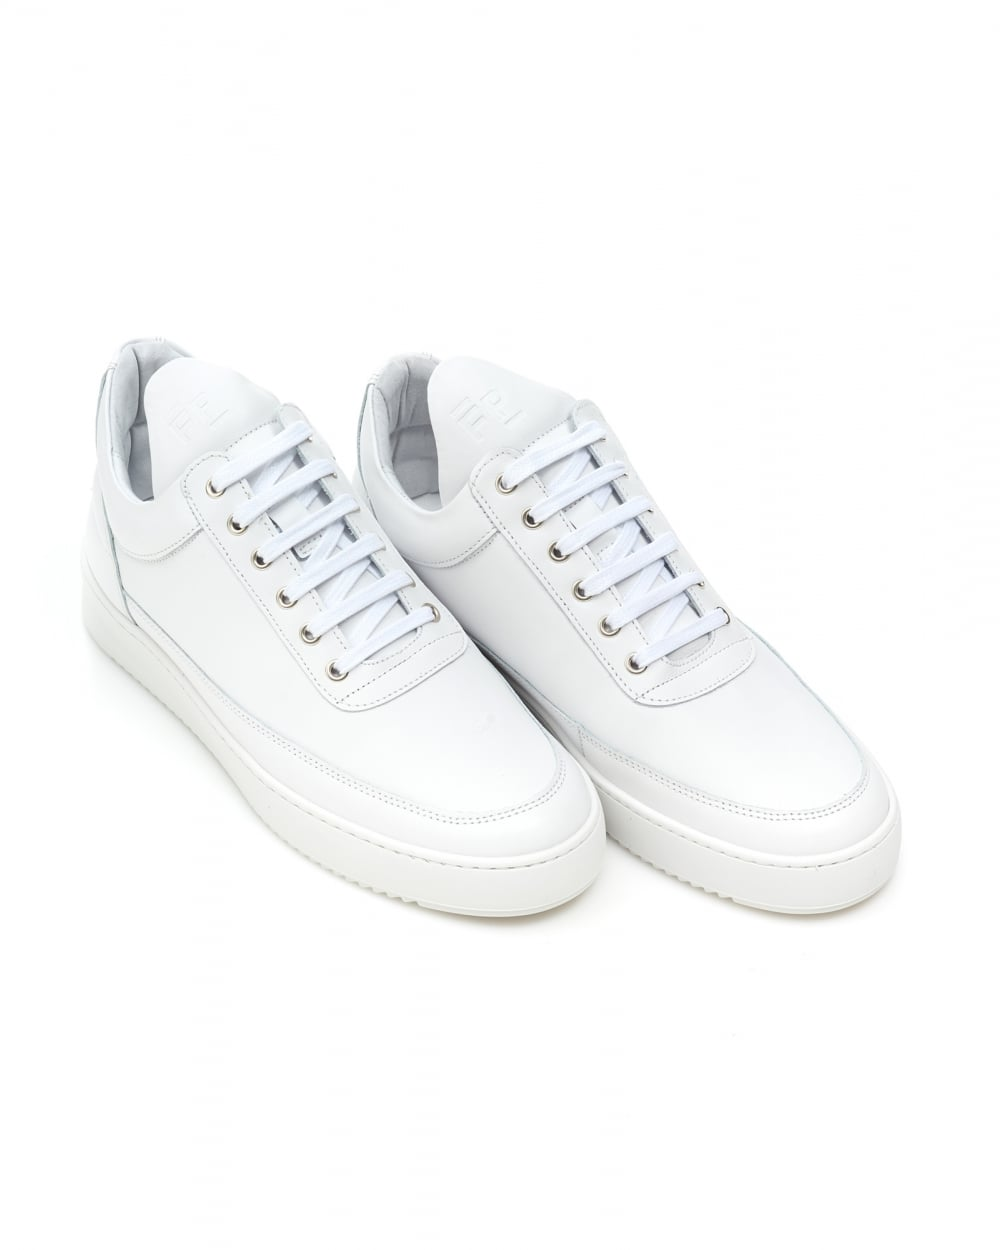 a359e30a1f88 Filling Pieces Mens Low Top Trainers